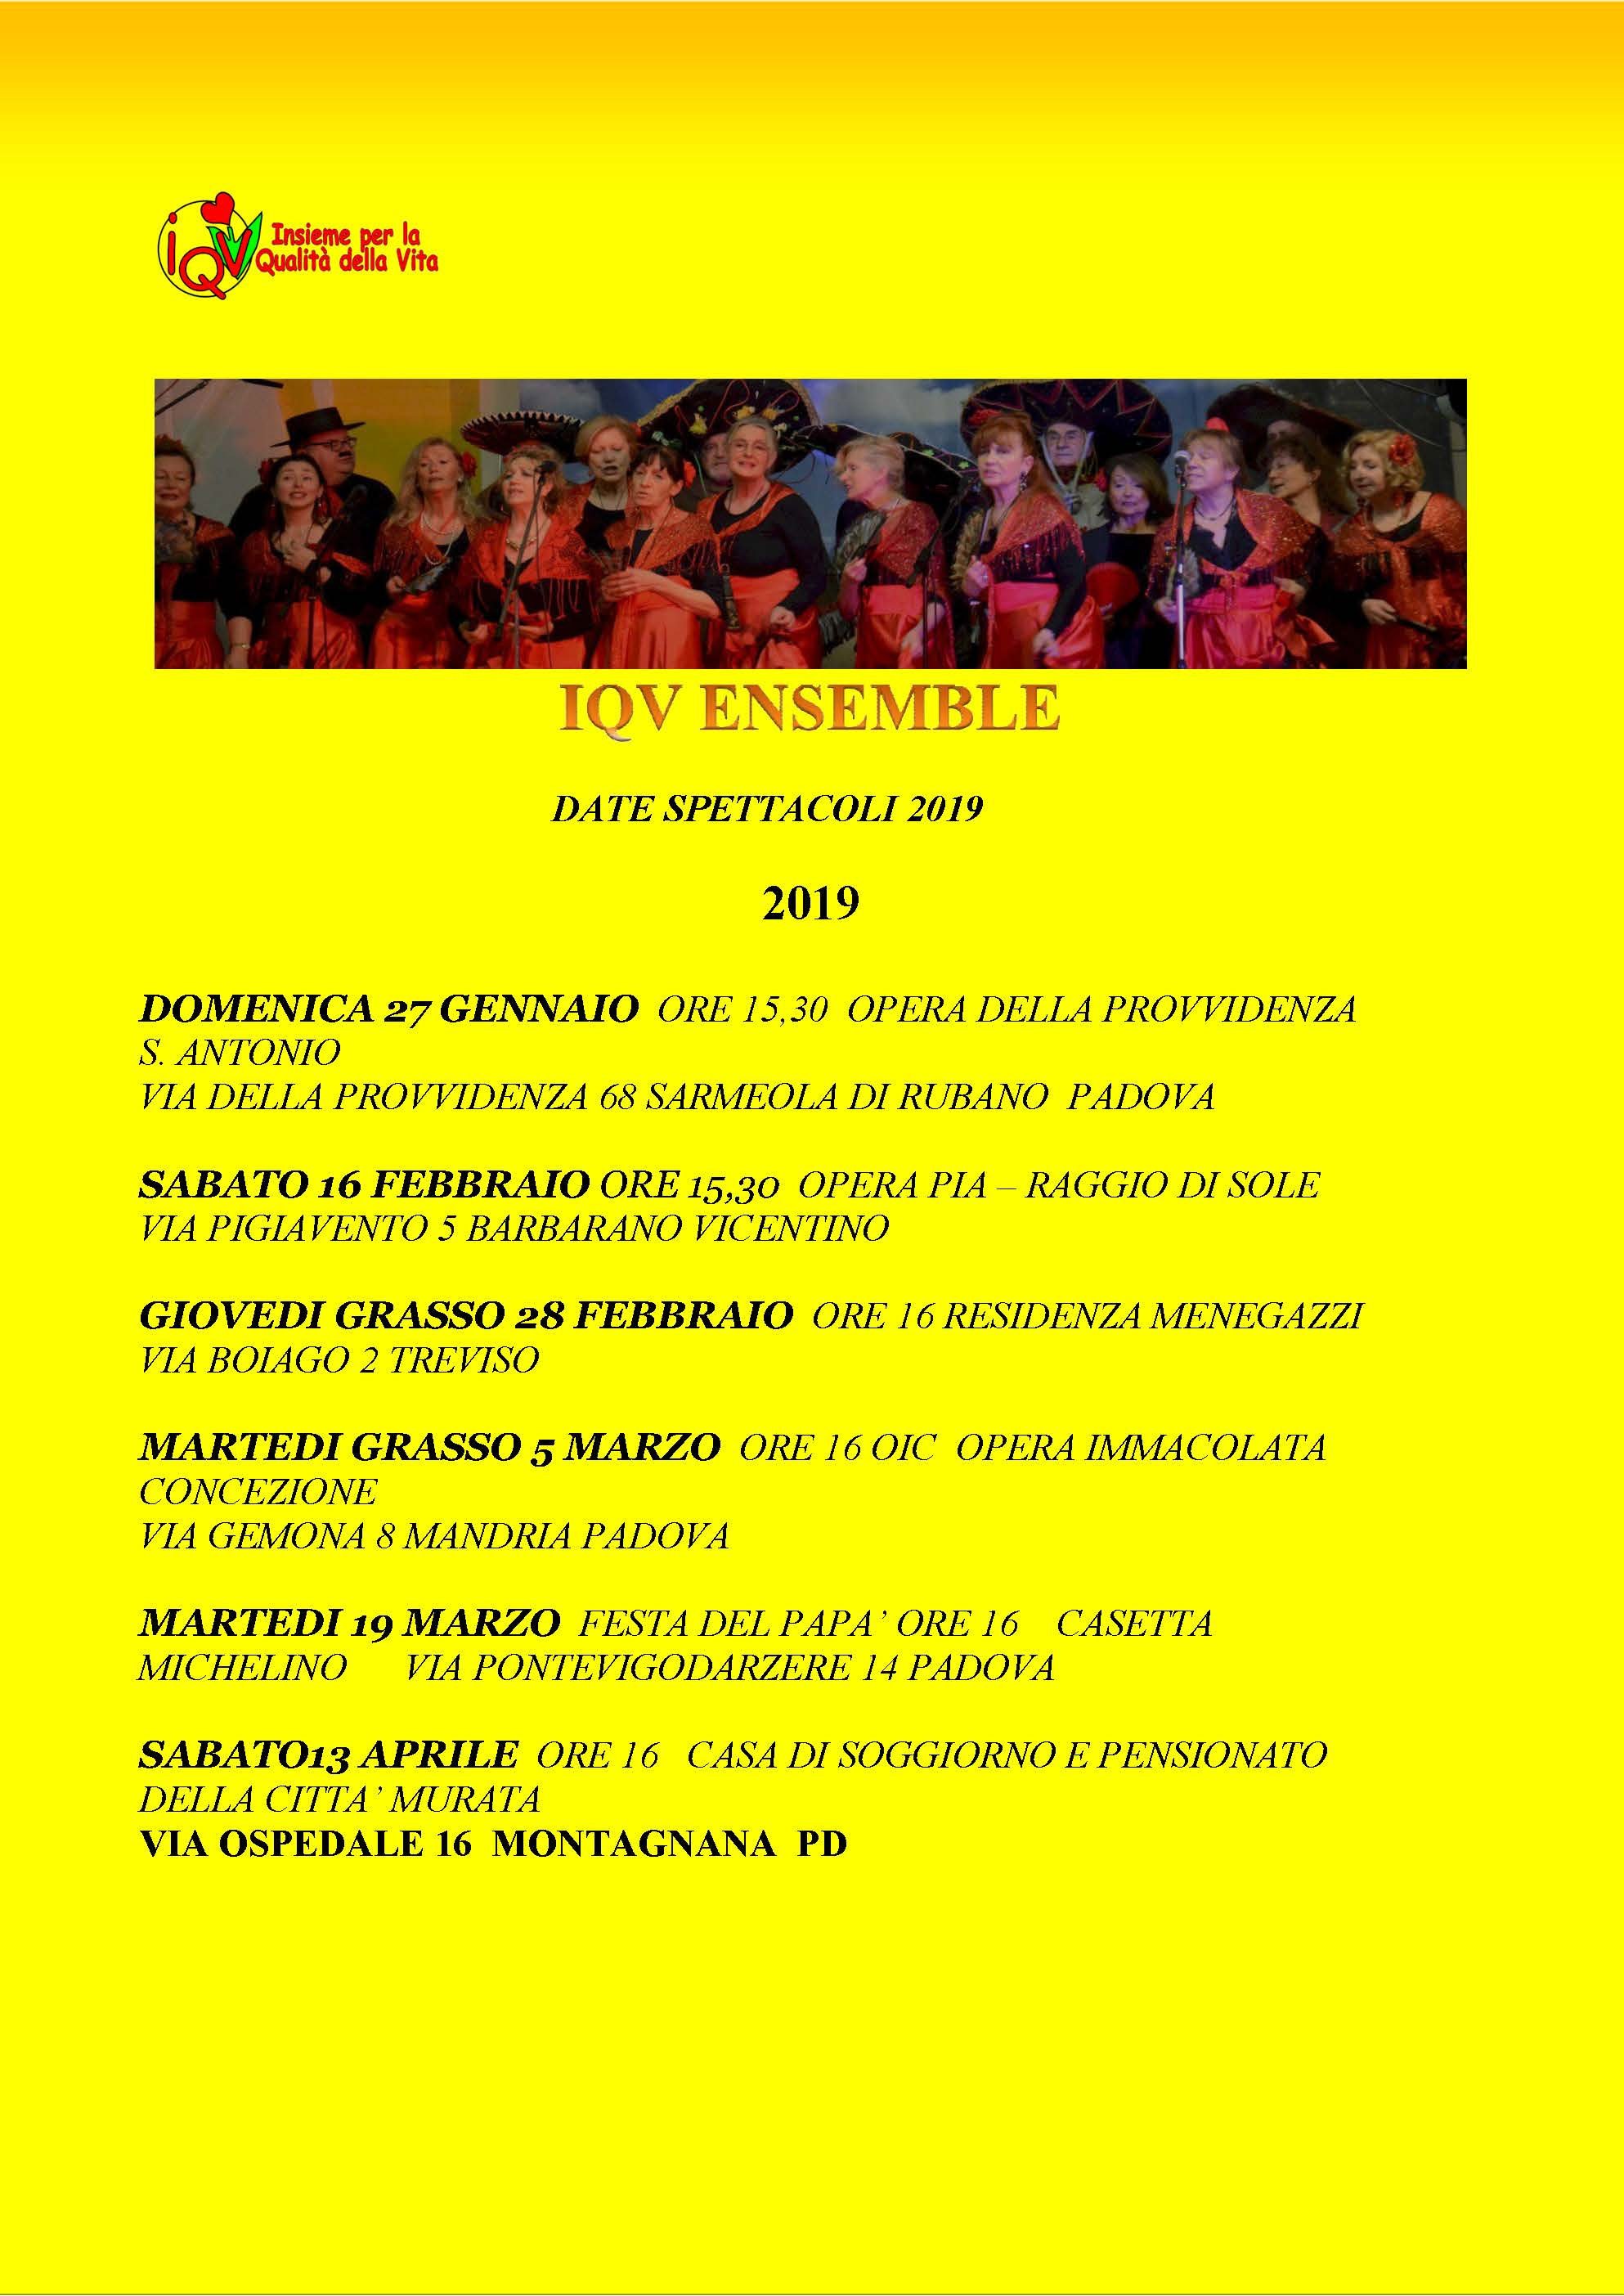 Calendario eventi IQV Ensemble 2019